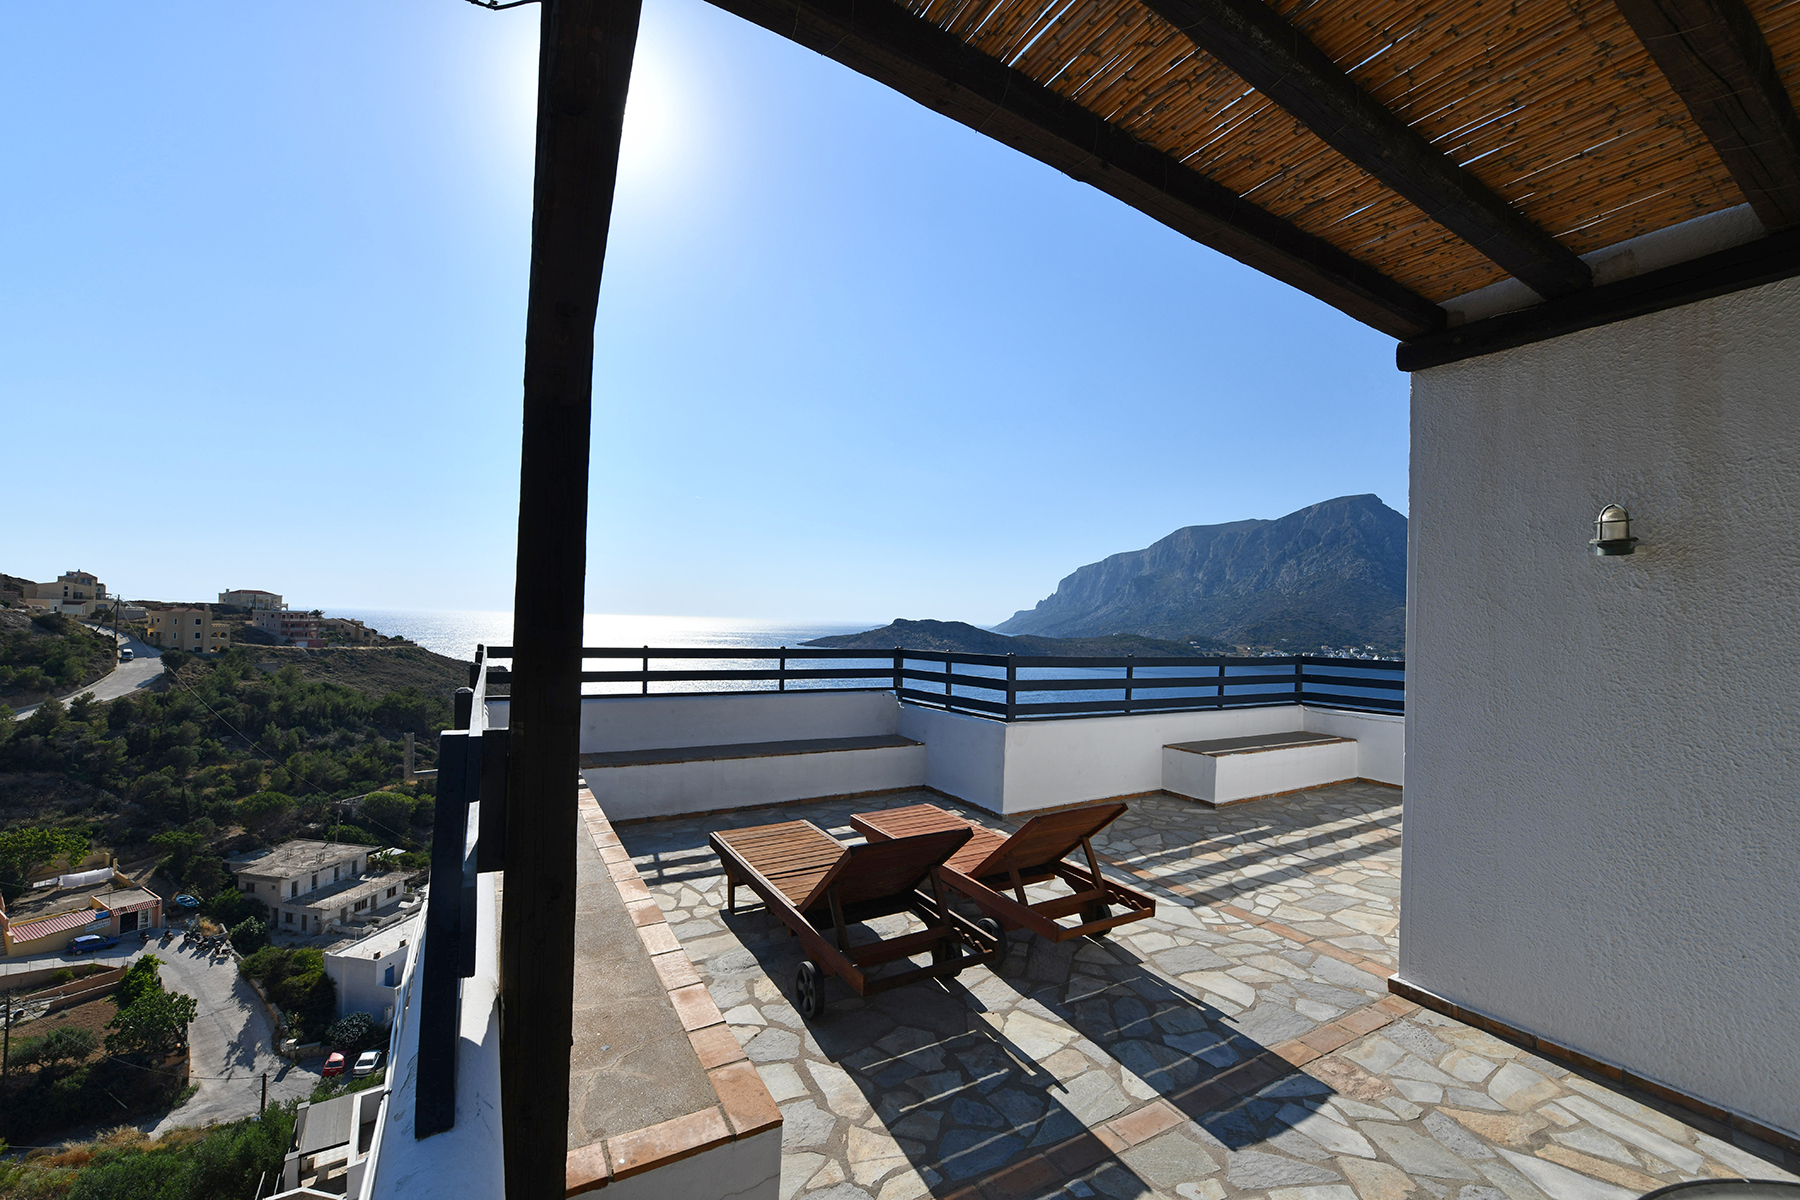 kalymnos,villa,rent,apartments,jkl,